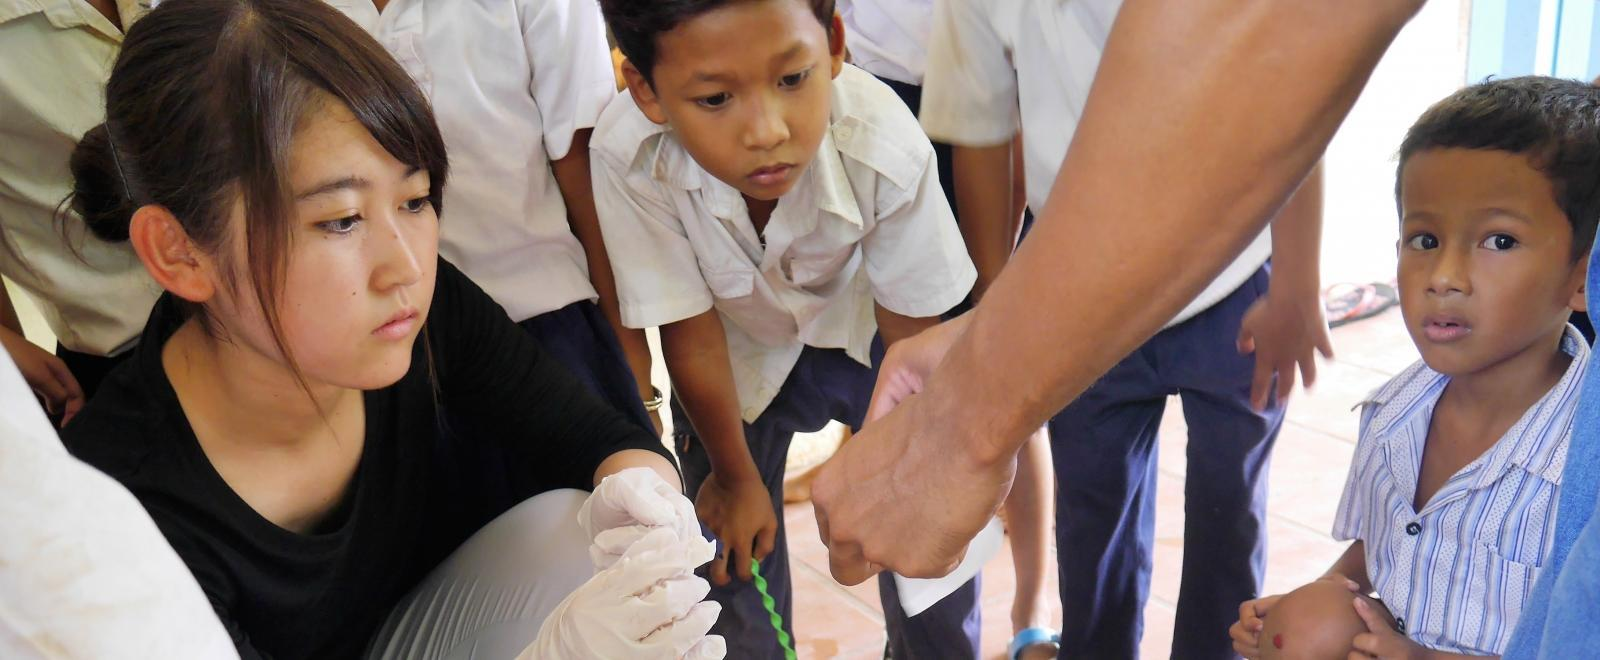 A female intern is pictured taking part in testing blood sugar levels whilst on her public health internship in Cambodia.